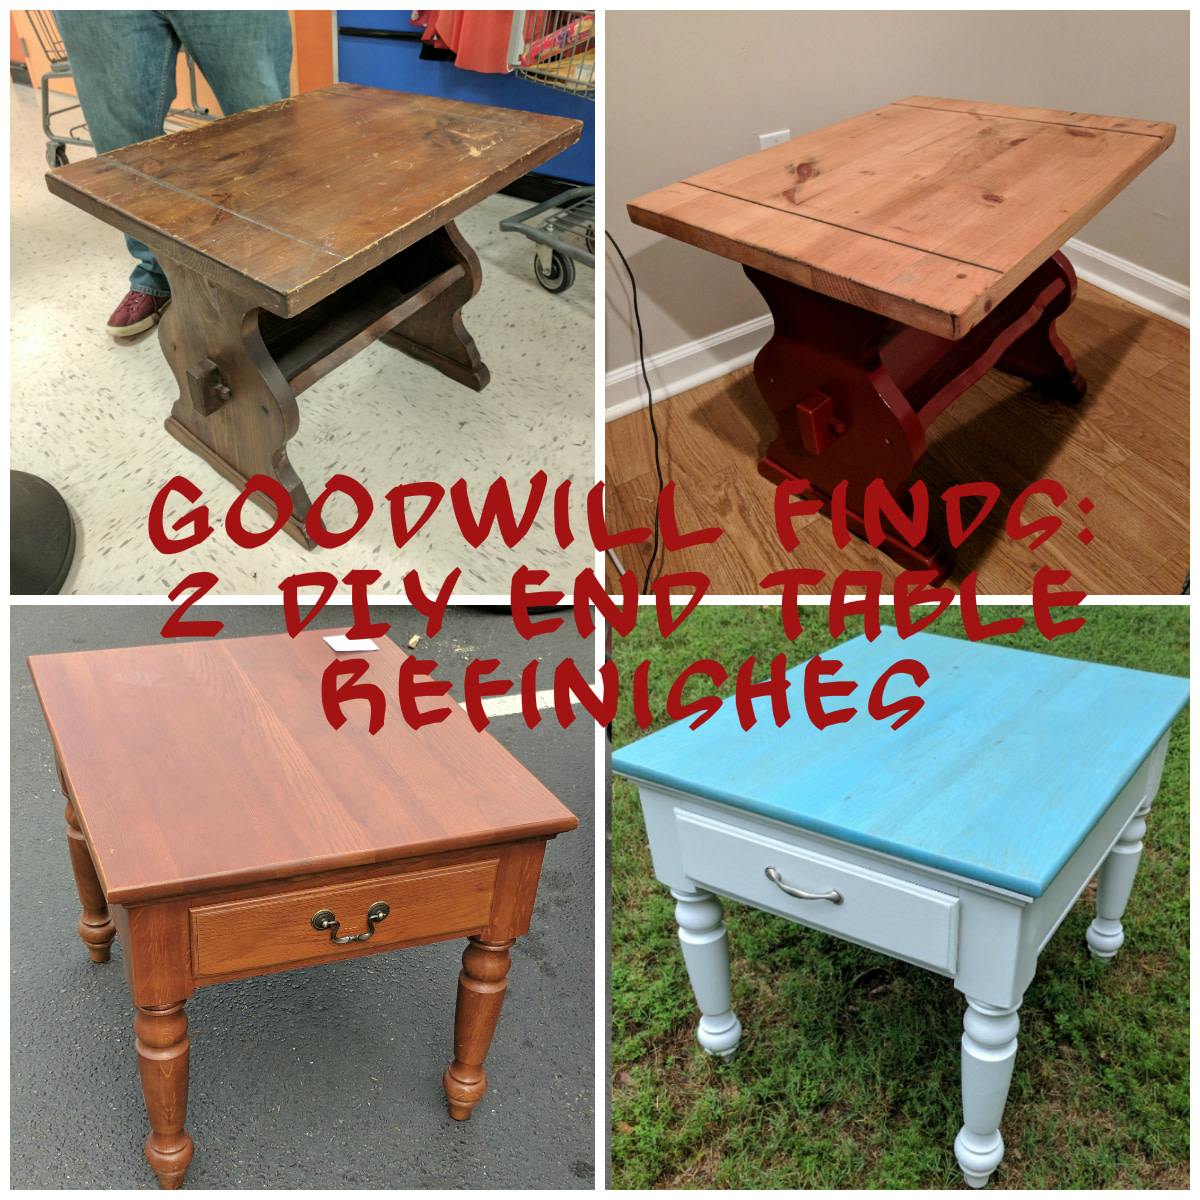 Home Decor DIY: Refinishing Two Cheap End Tables From Goodwill